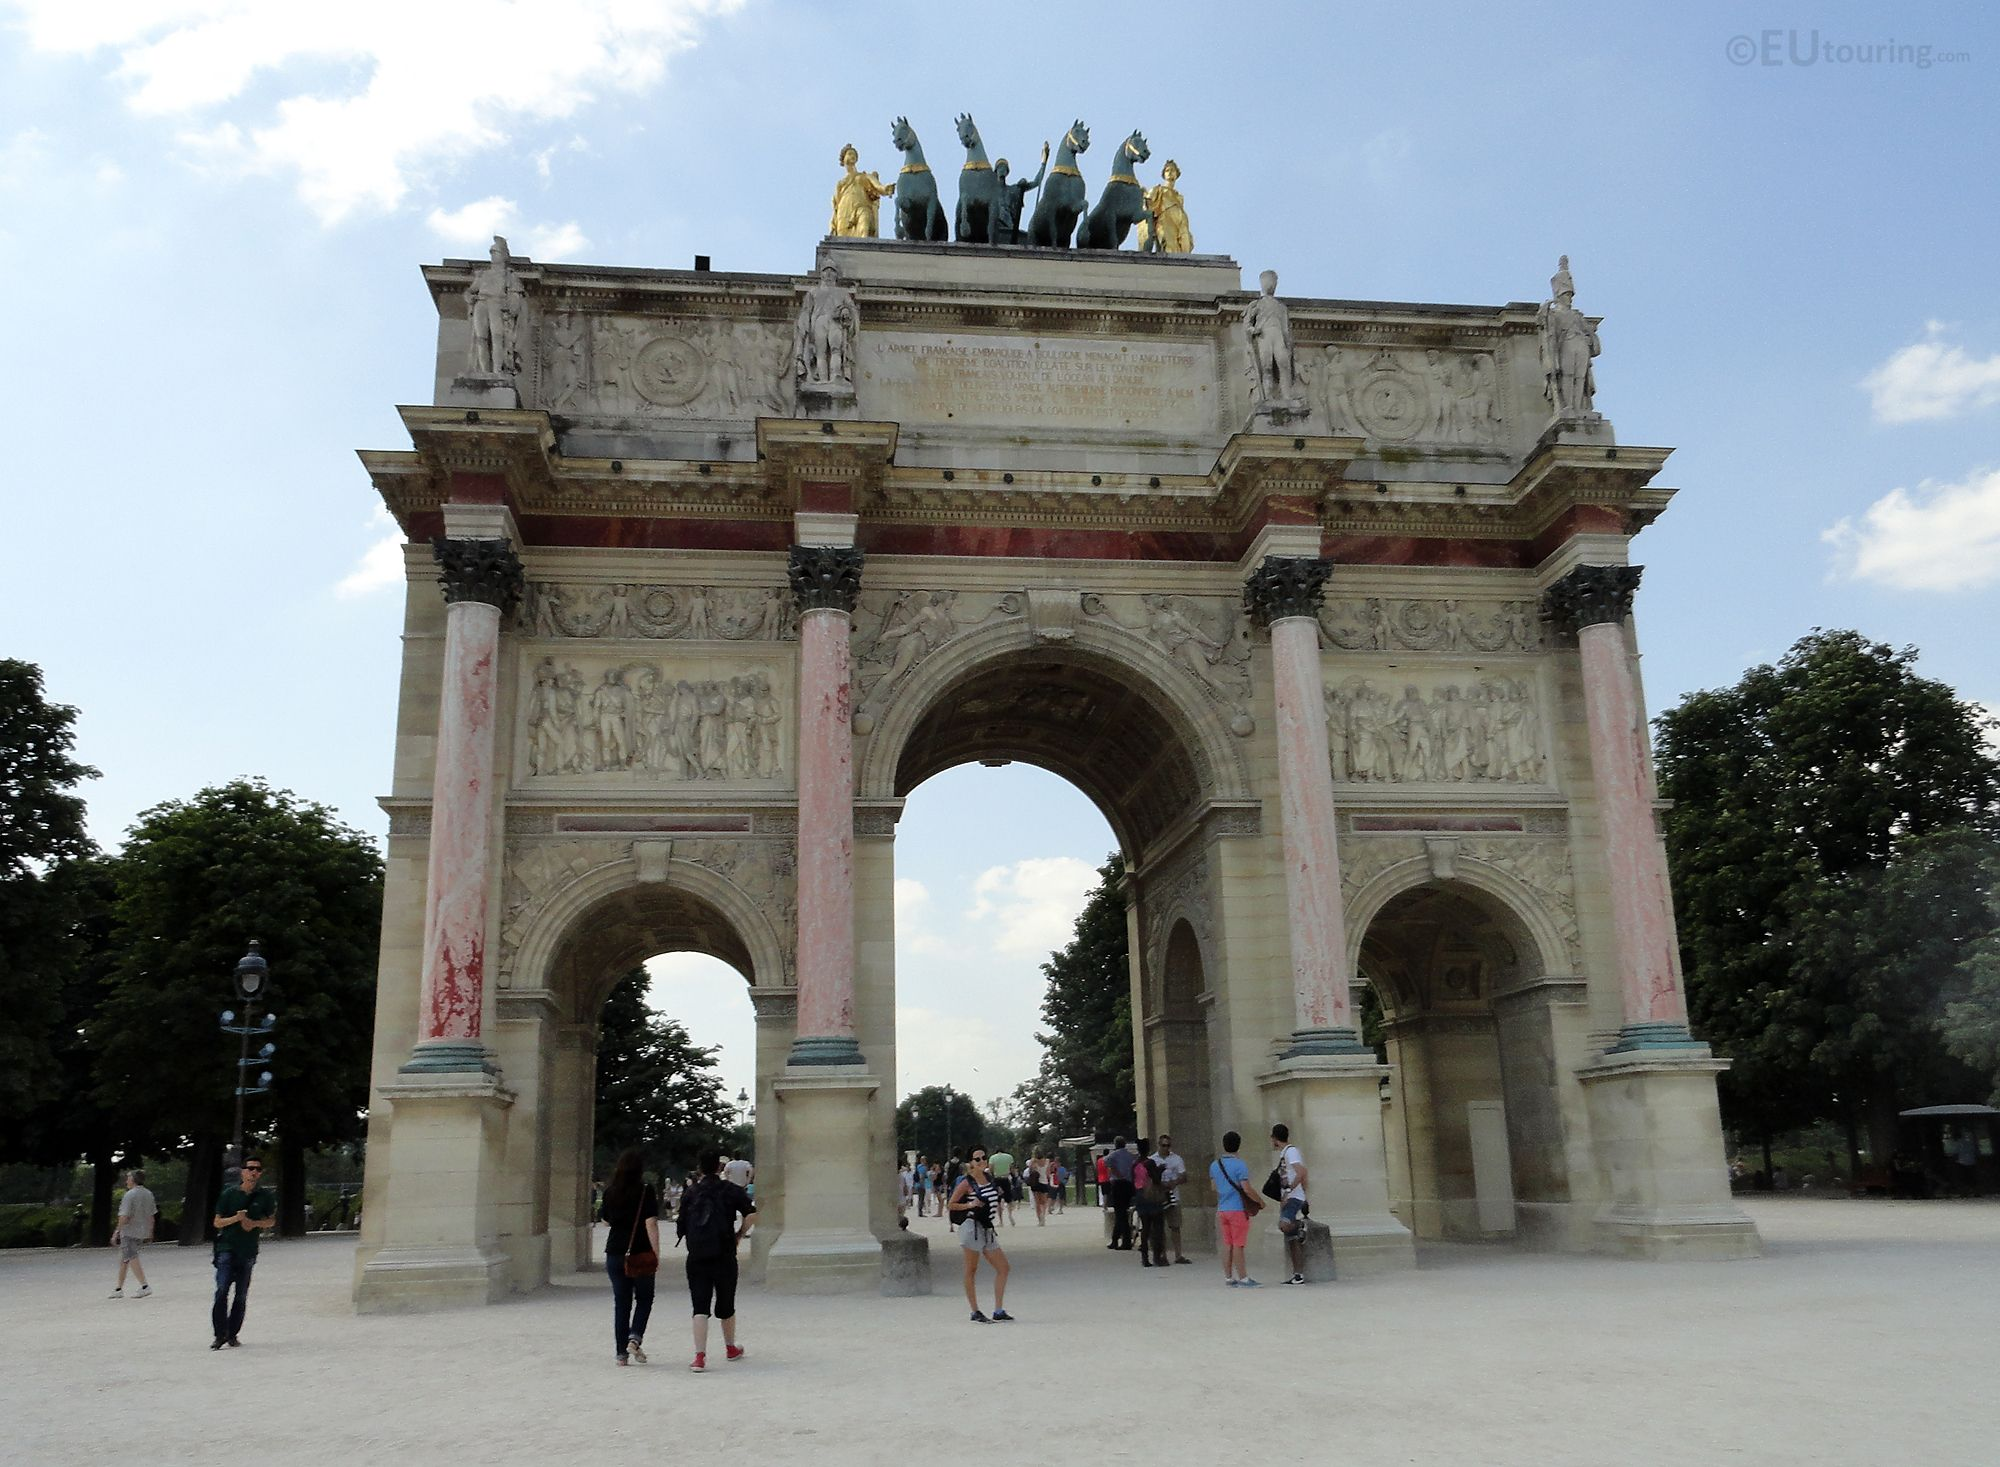 In This Photo You Can See The Arc De Triomphe Du Carrousel That